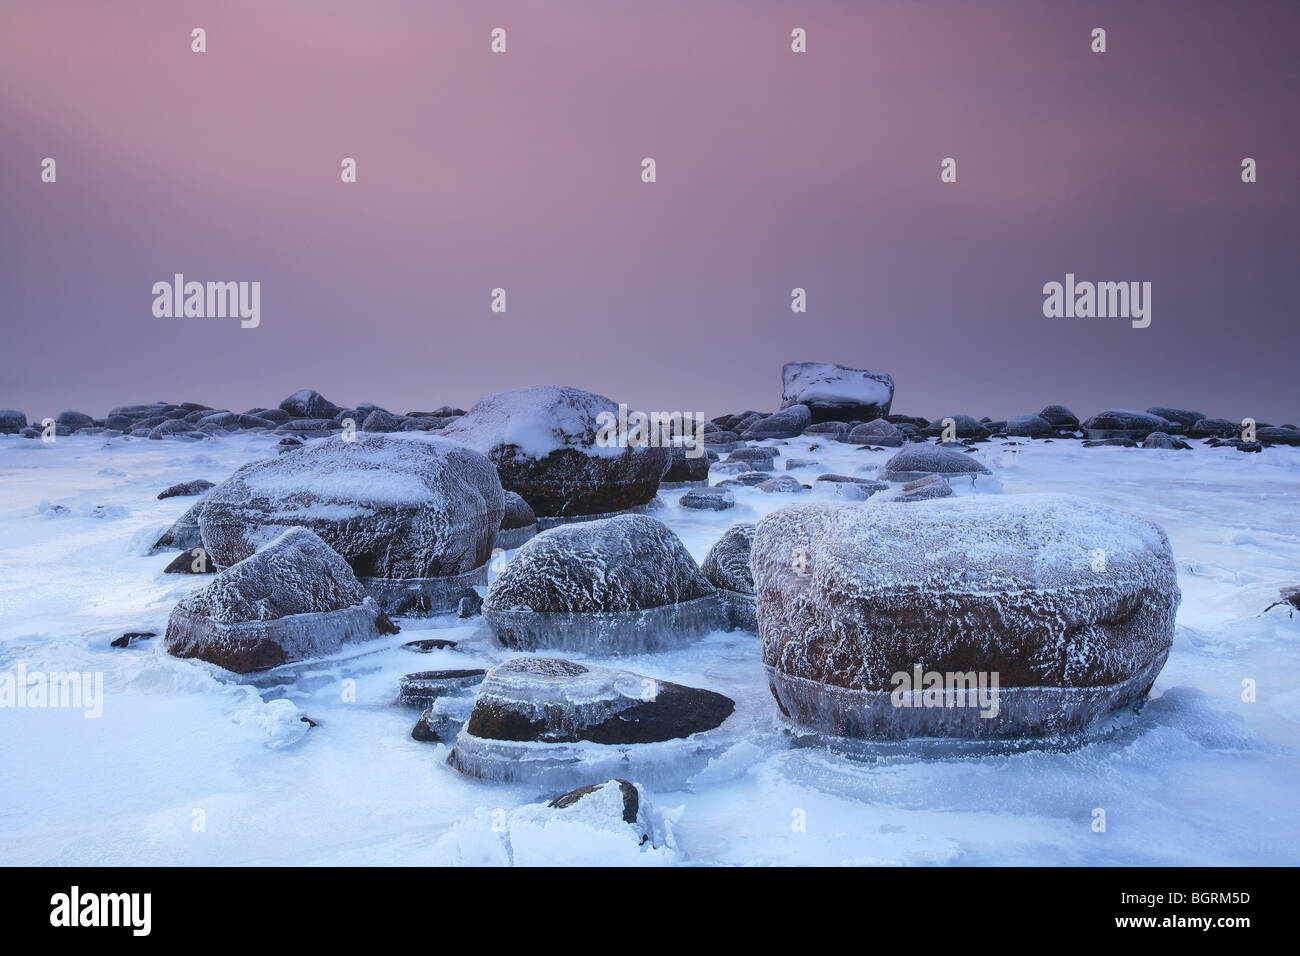 Frosted coastline and sea fog by the Oslofjord at Larkollen in Rygge, Norway. - Stock Image